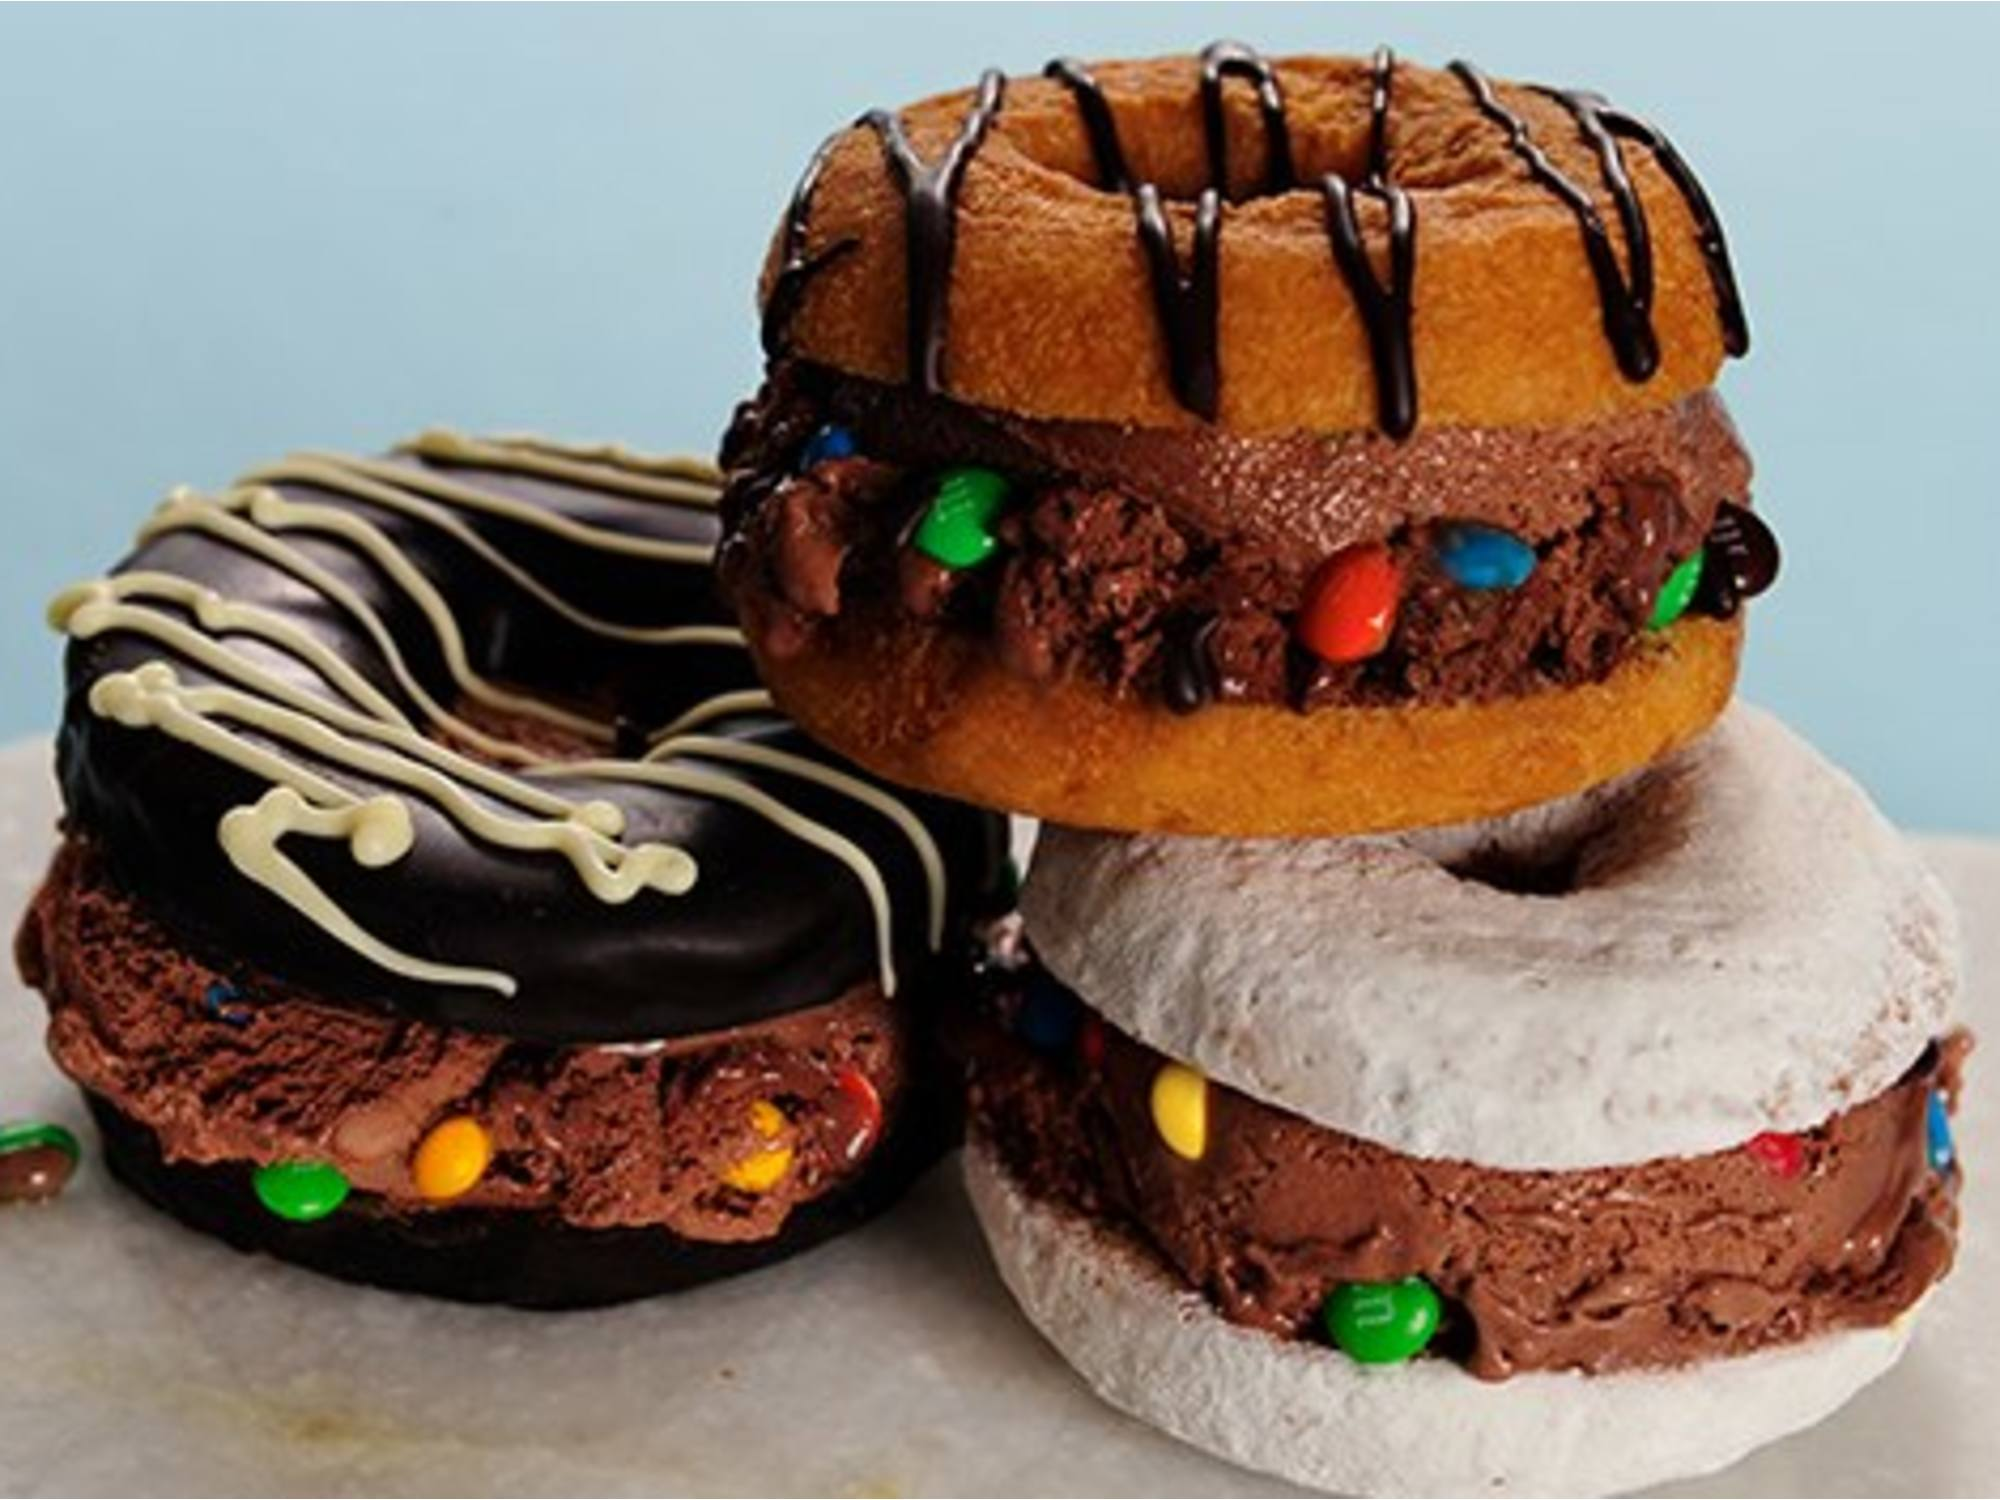 Sándwiches helados tipo rosquilla